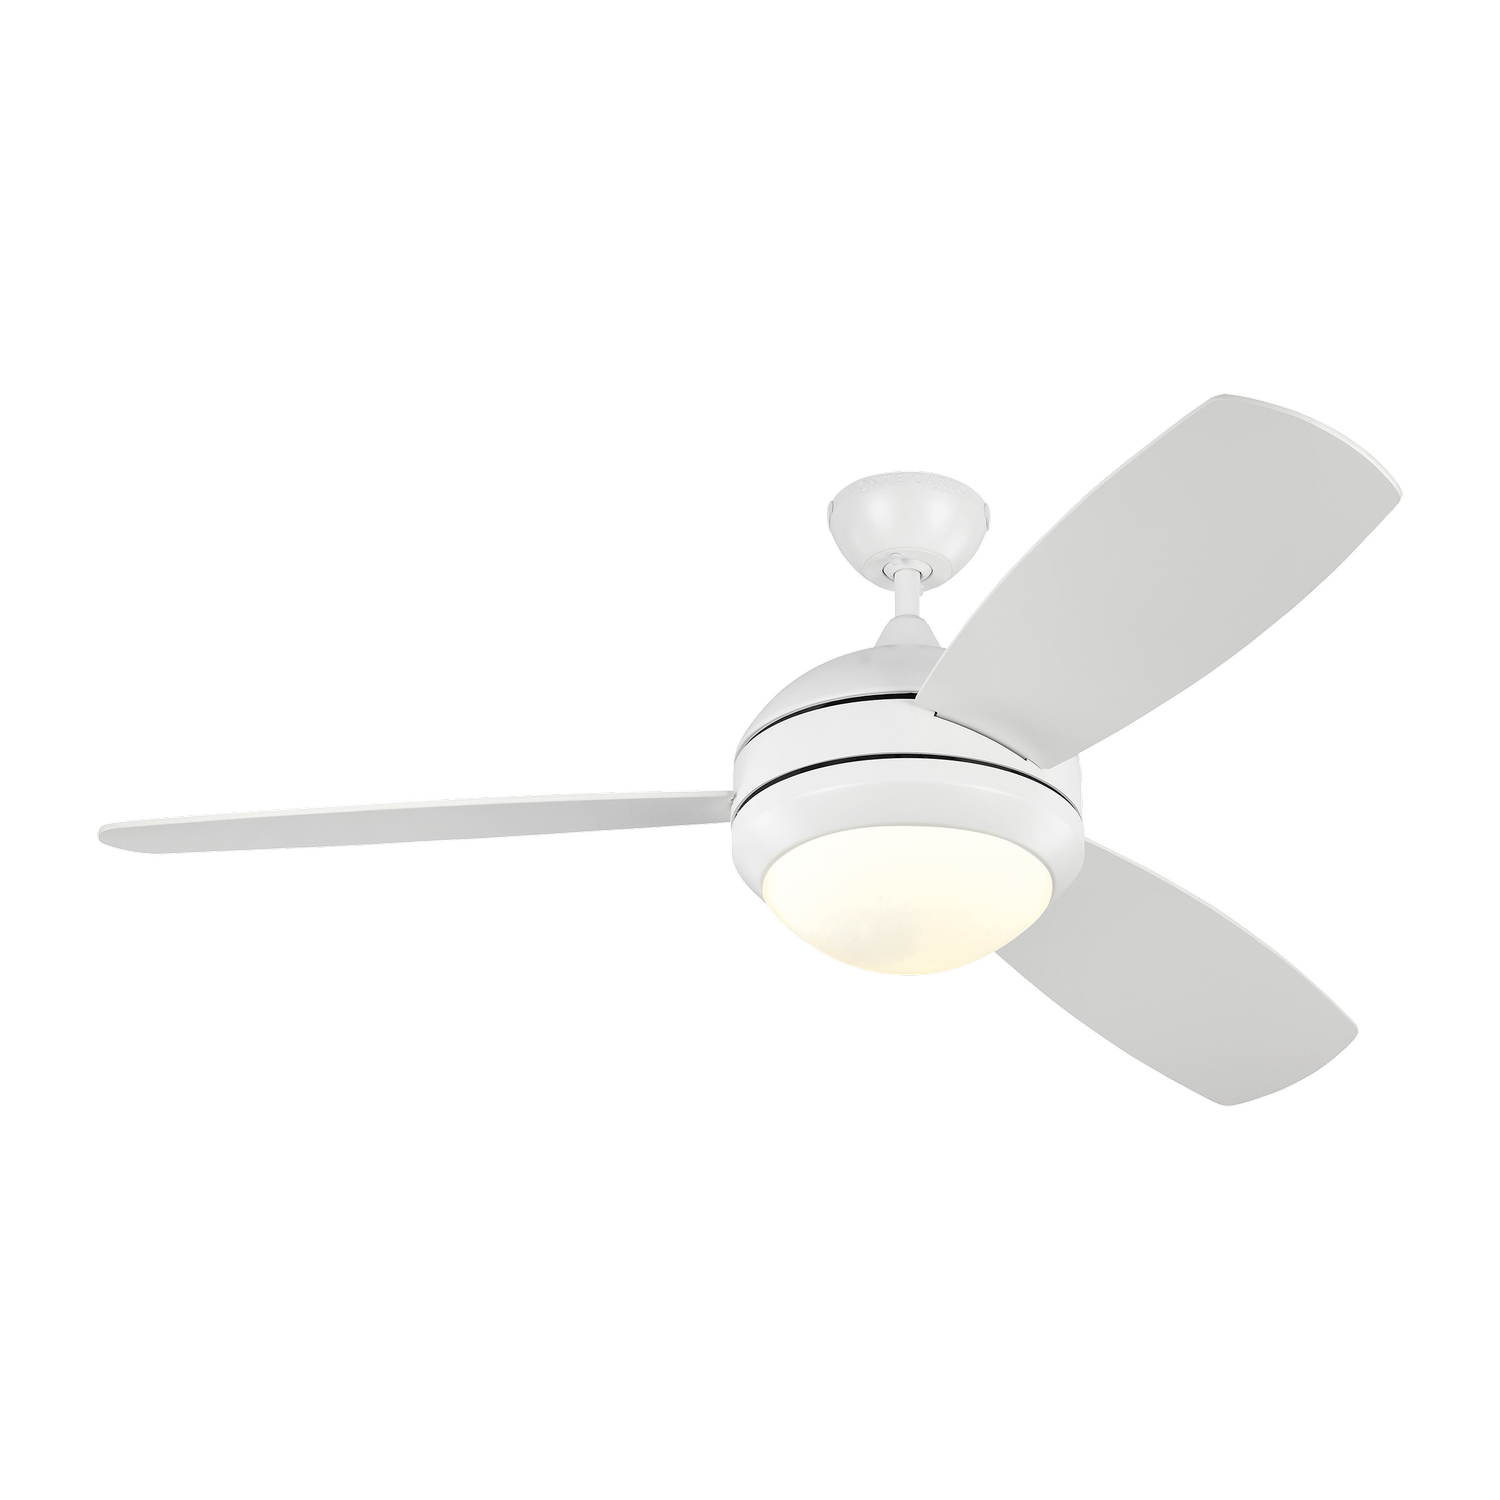 52 inchCeiling Fan from the Discus Trio collection by Monte Carlo 3DIR52RZWD V1